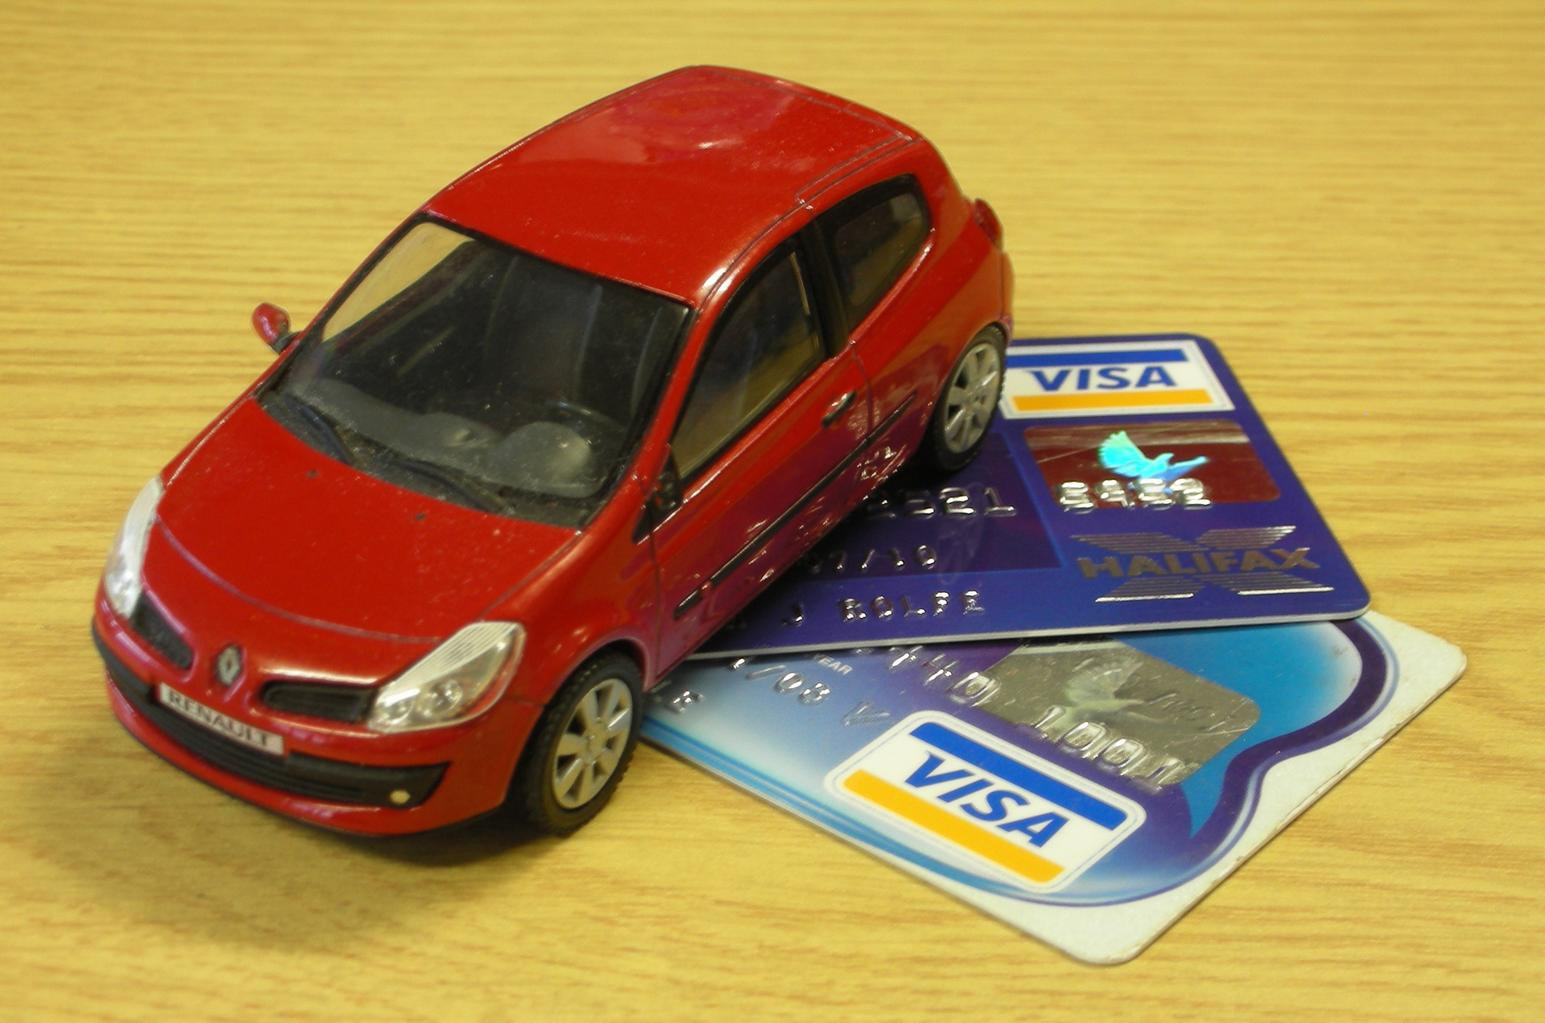 Should I buy a car with a credit card?